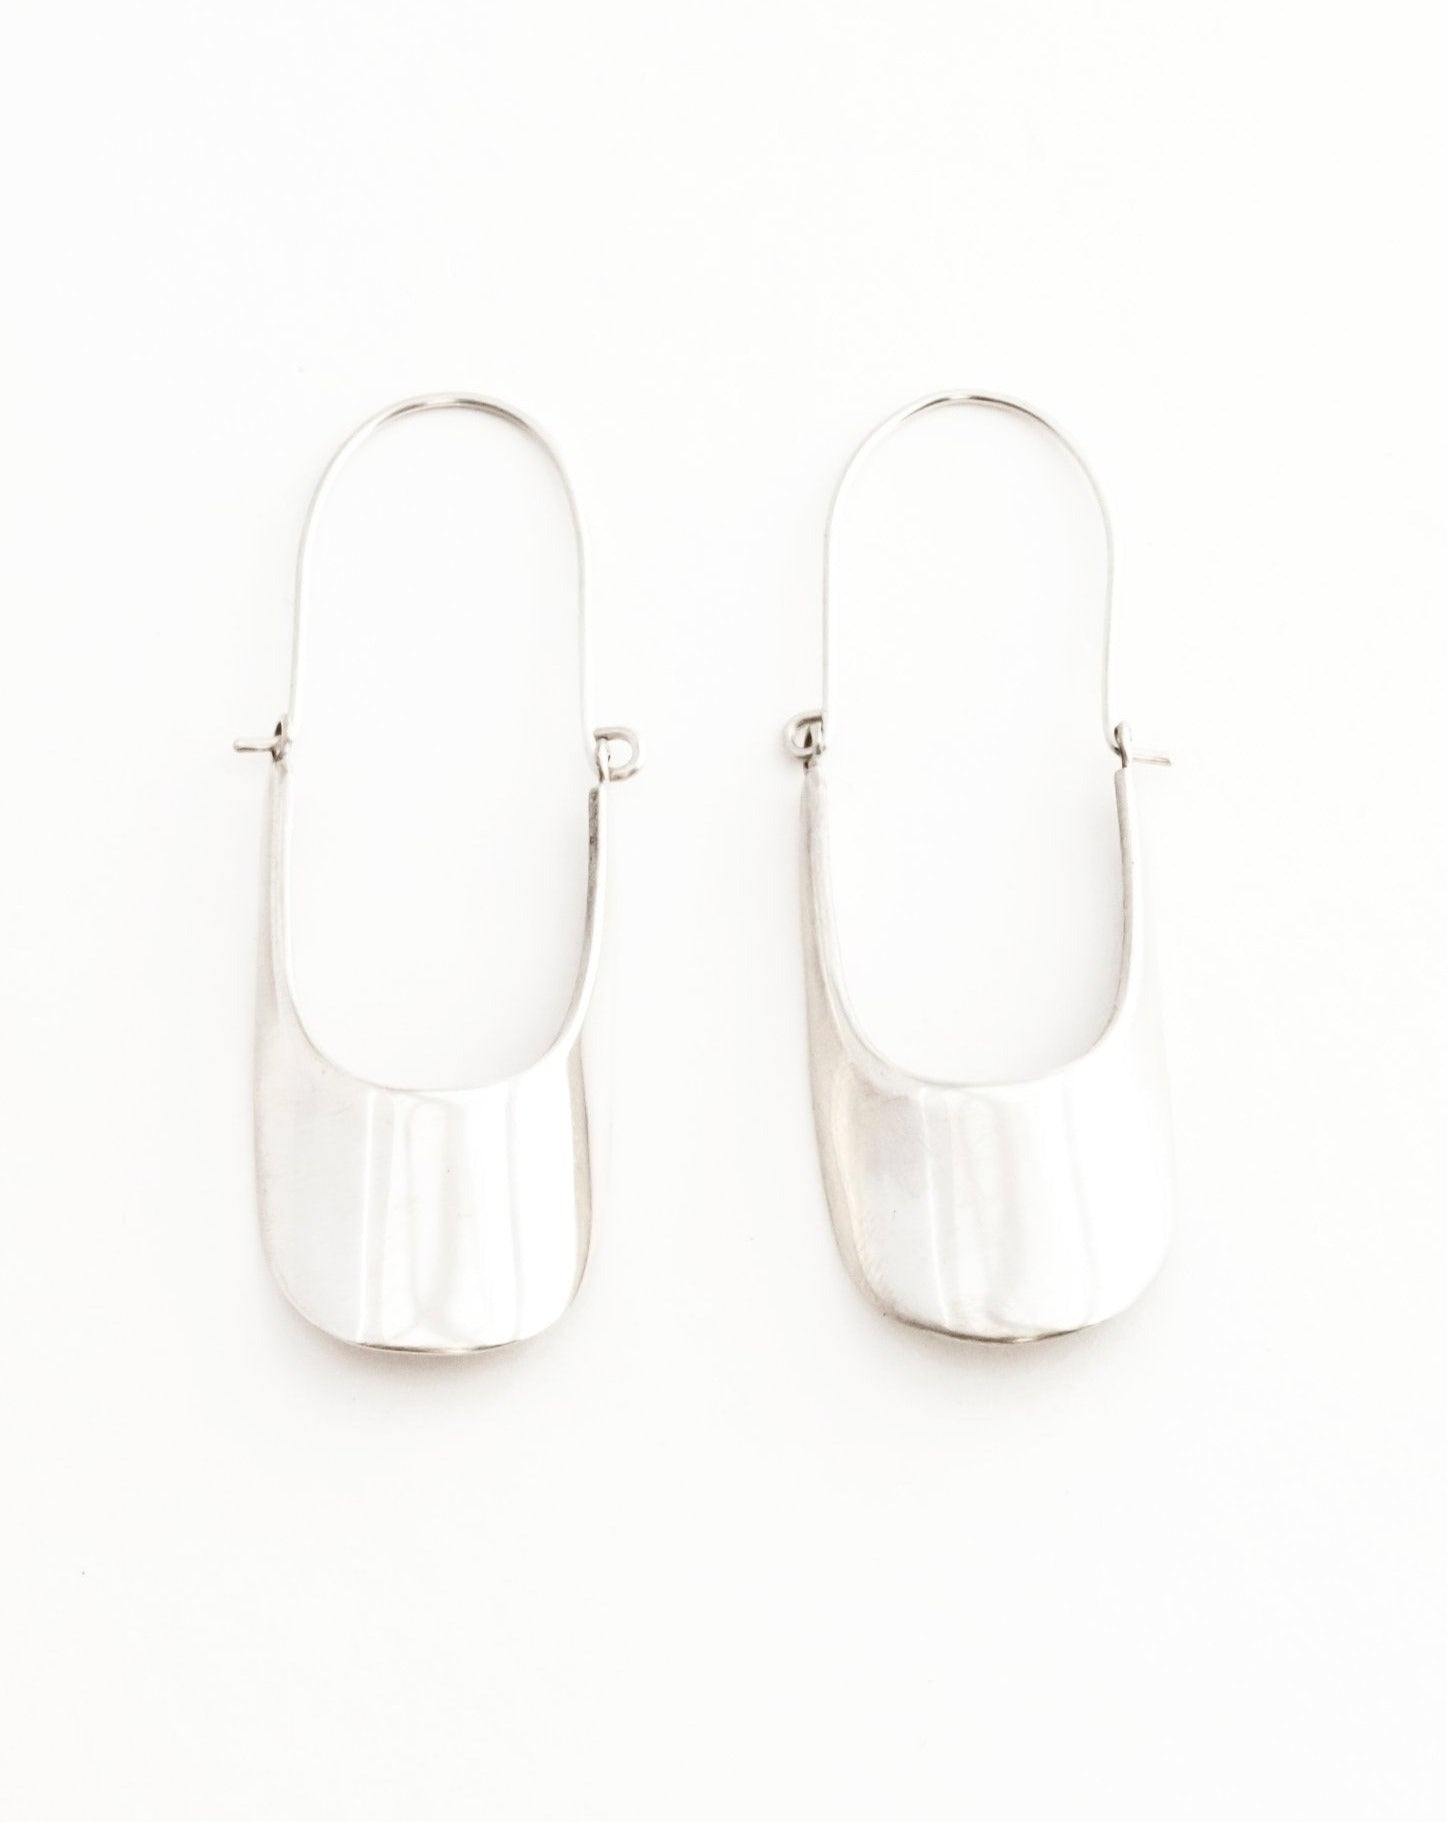 Scoop Earrings - Silver